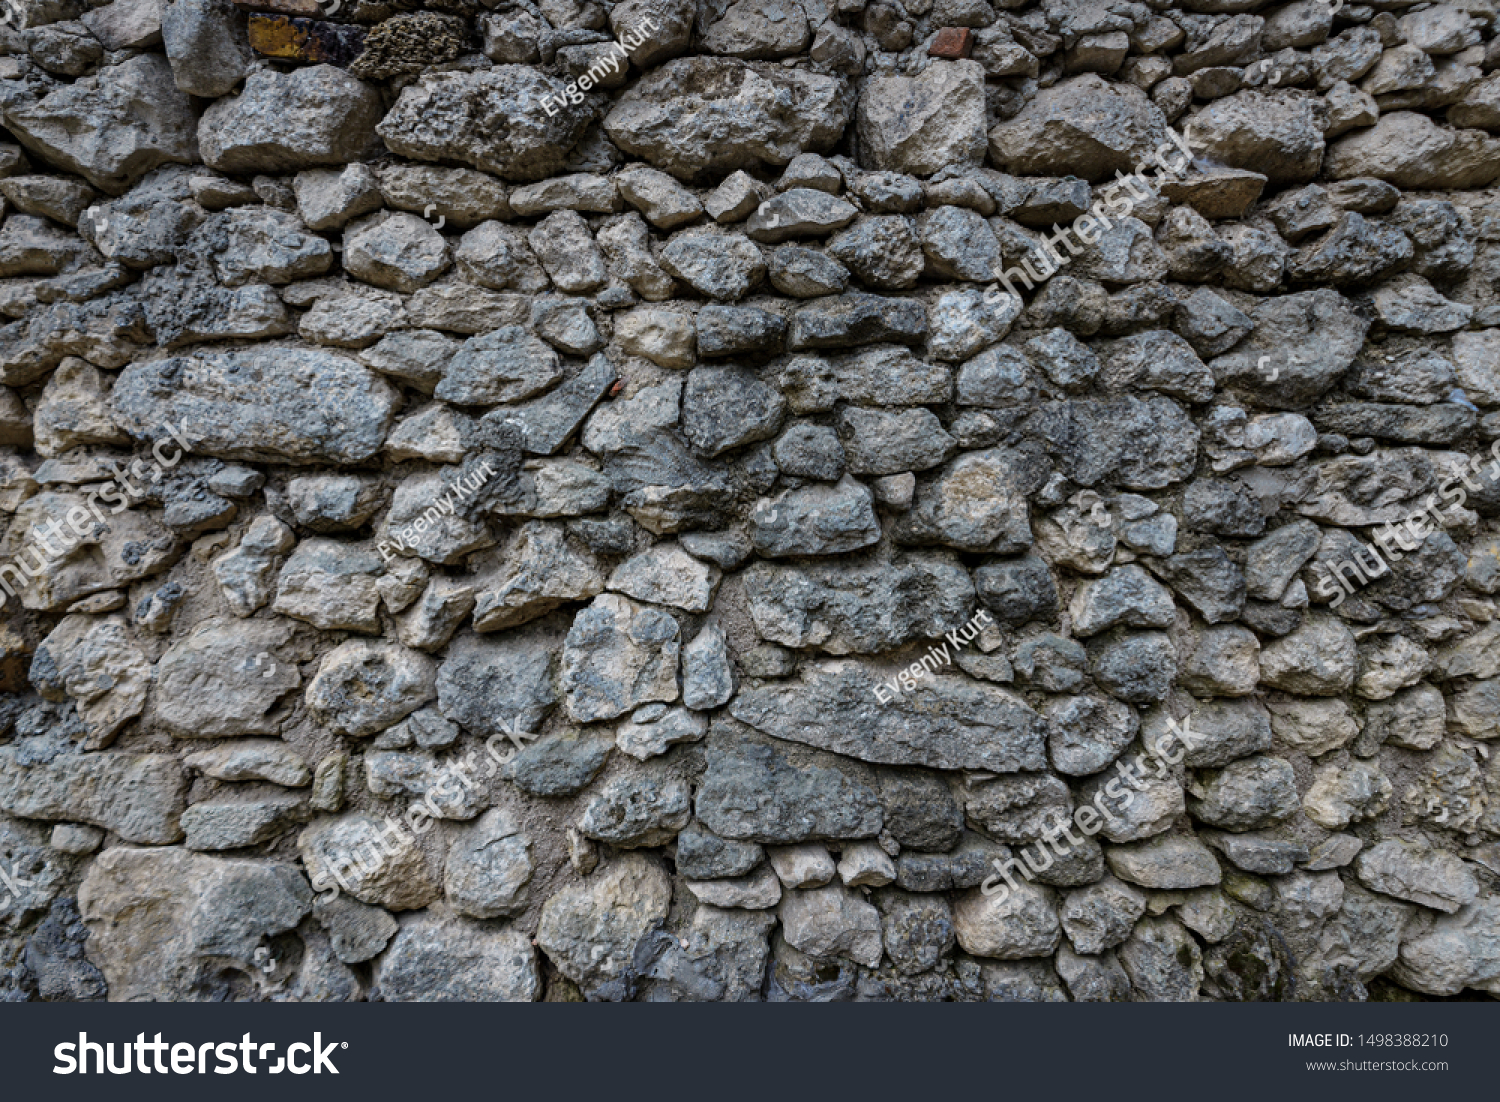 rough rough natural stone background texture #1498388210